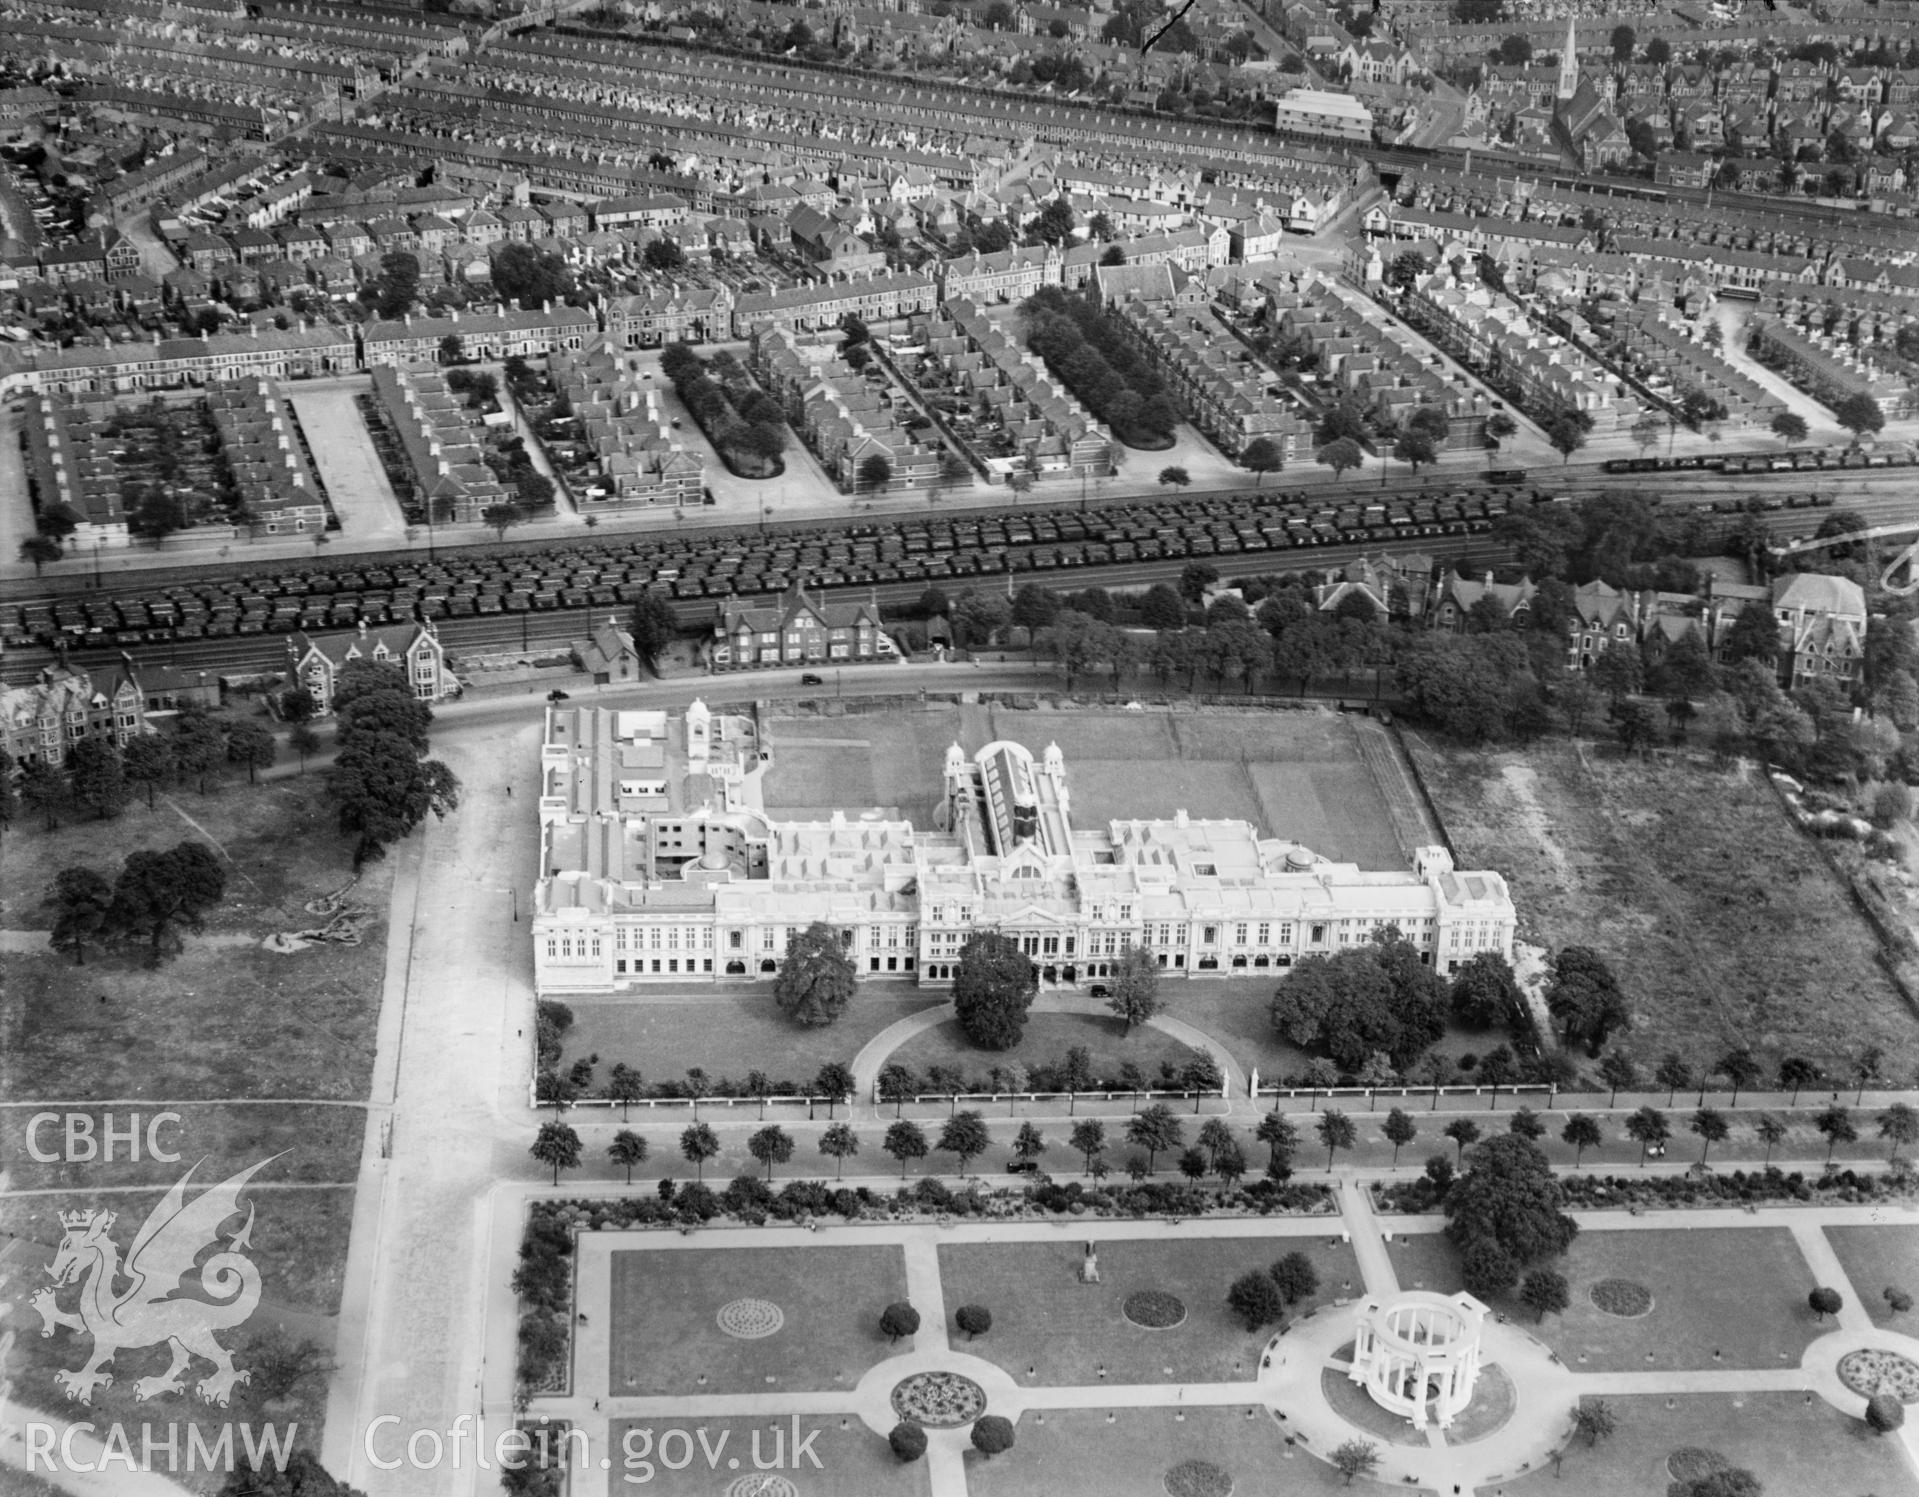 Cardiff University, Cathays Park, oblique aerial view. 5?x4? black and white glass plate negative.